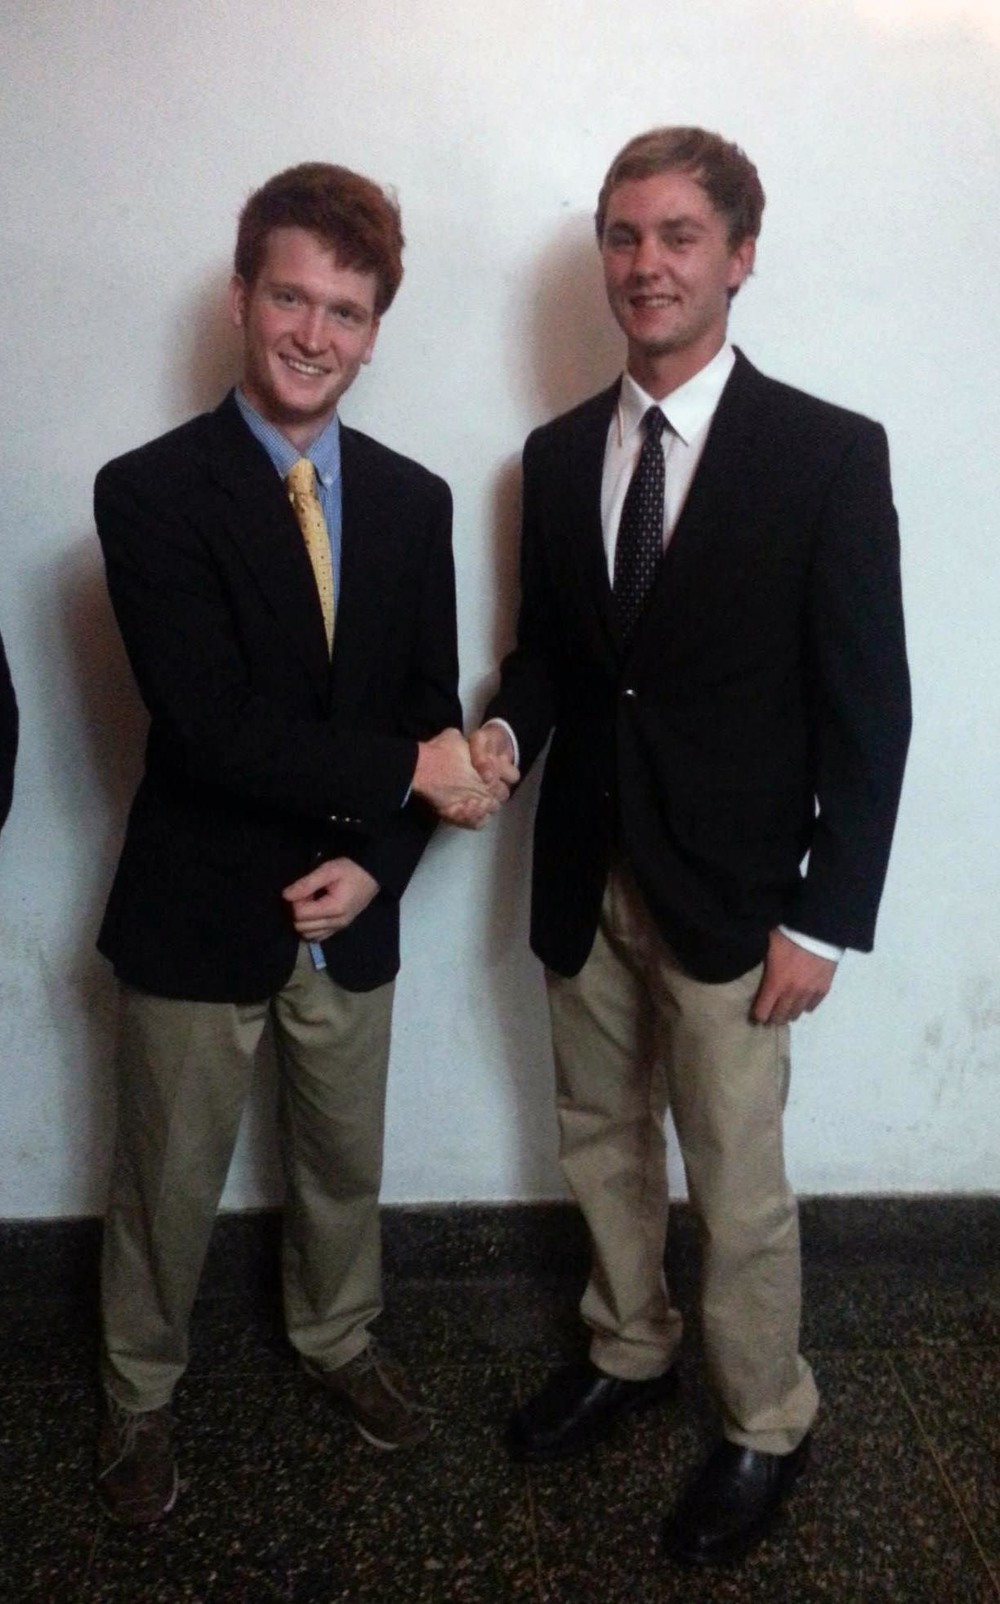 Fall 2014 - Big/Little Ceremony - Rory McGowan and Kevin DiGuiseppe